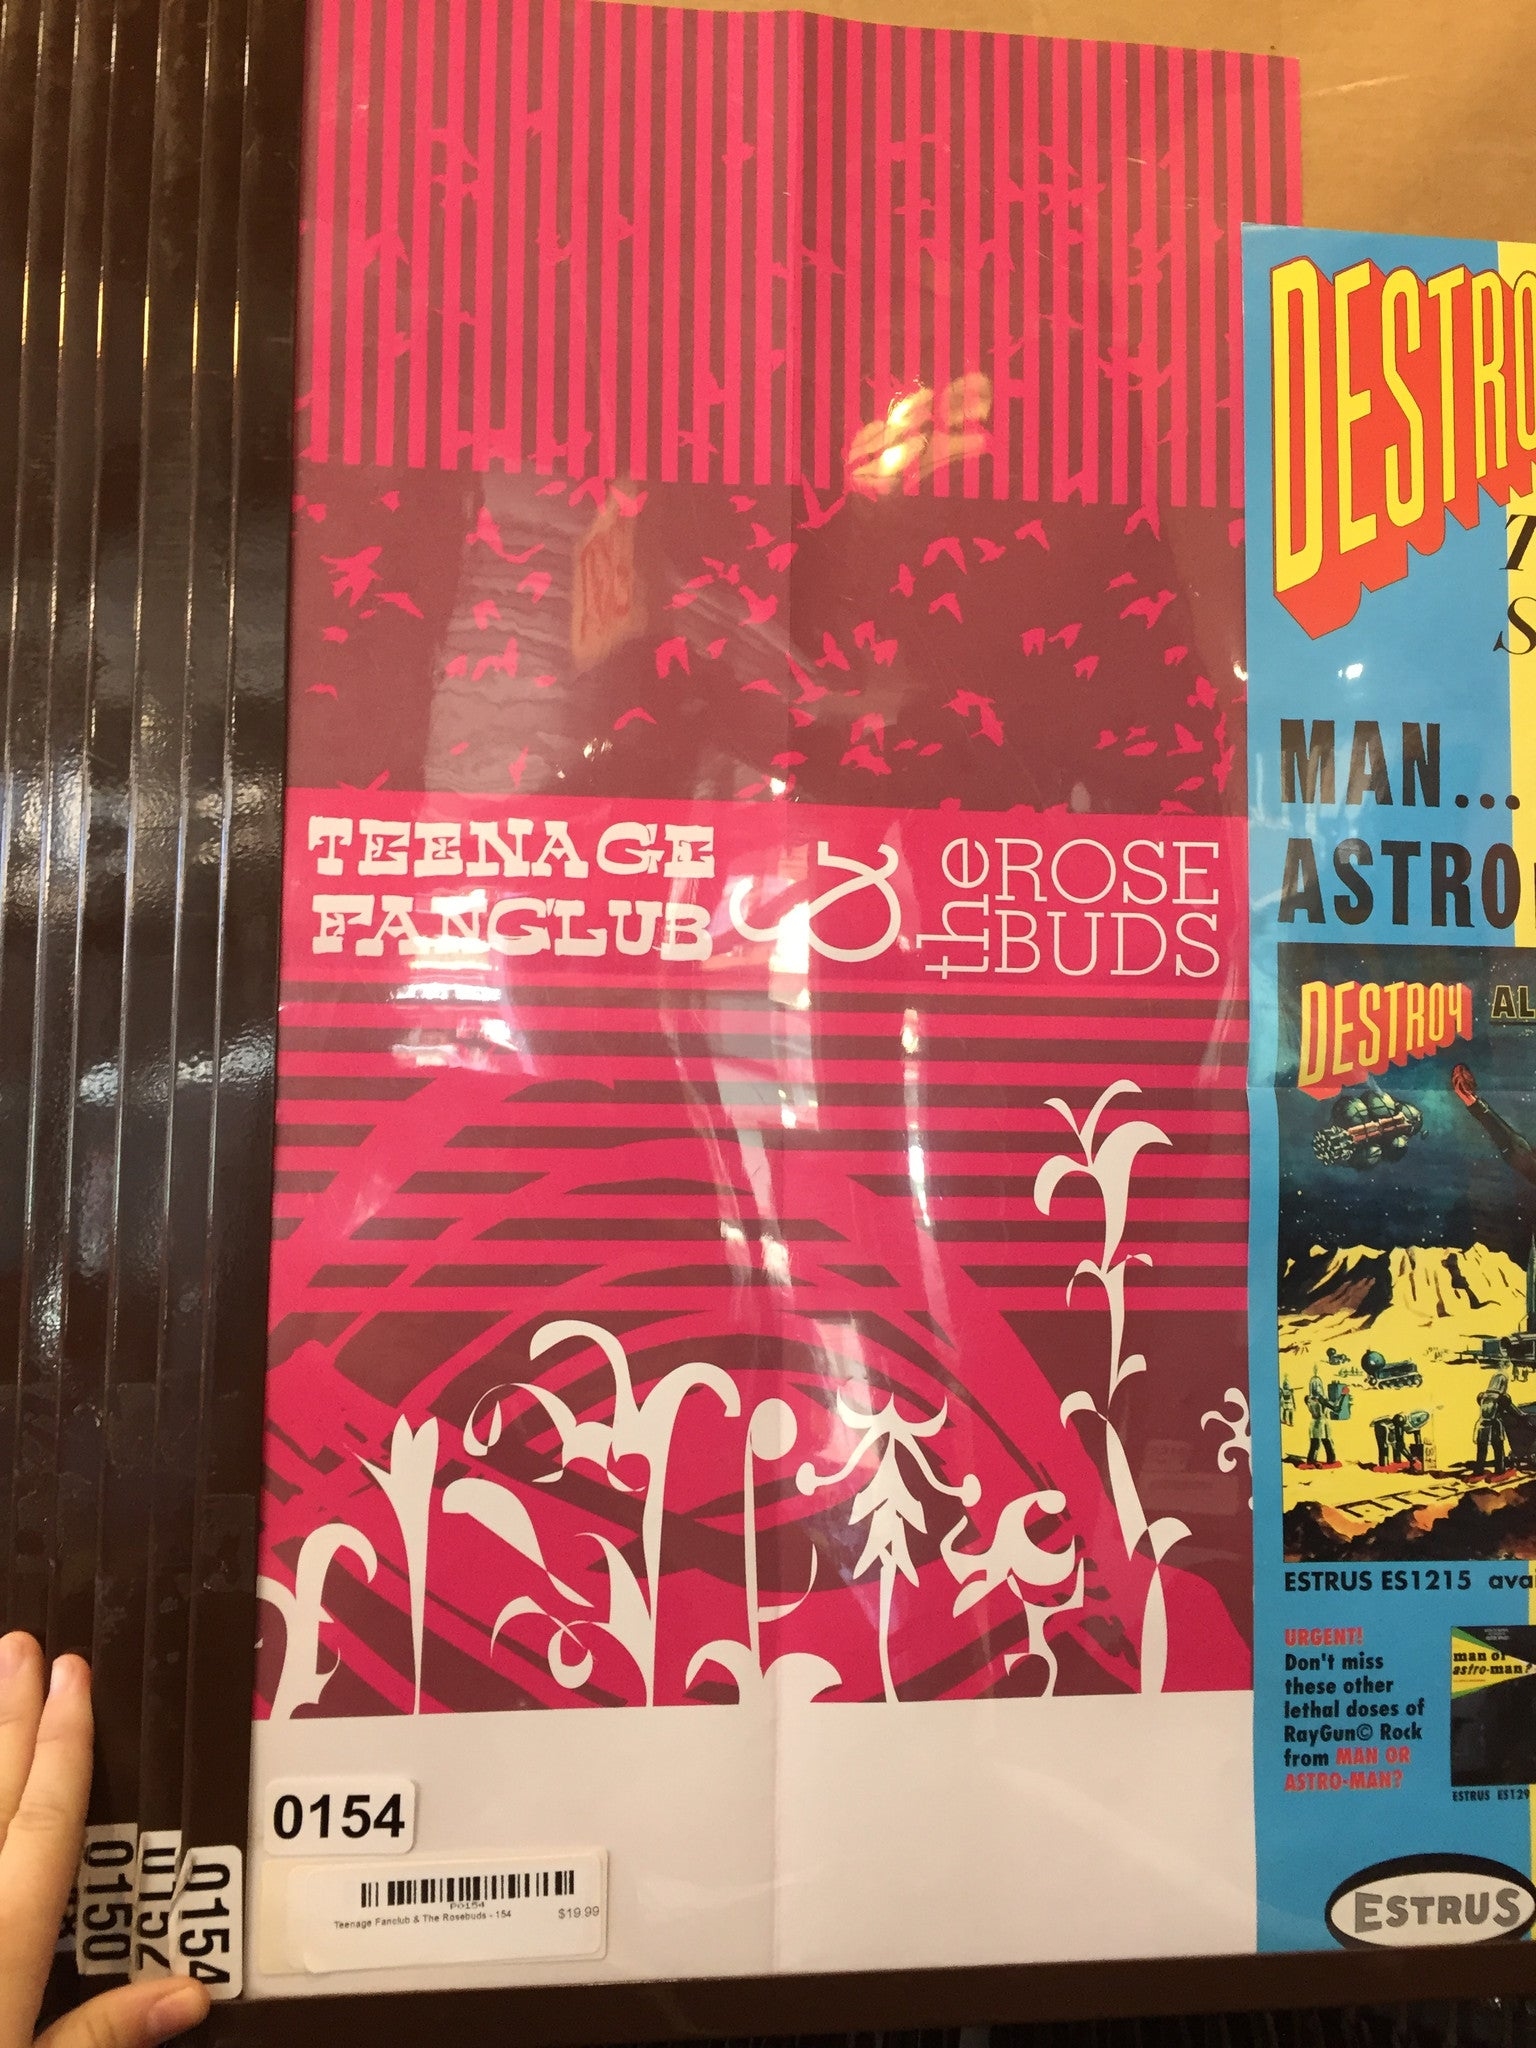 Teenage Fanclub & The Rosebuds - 0154